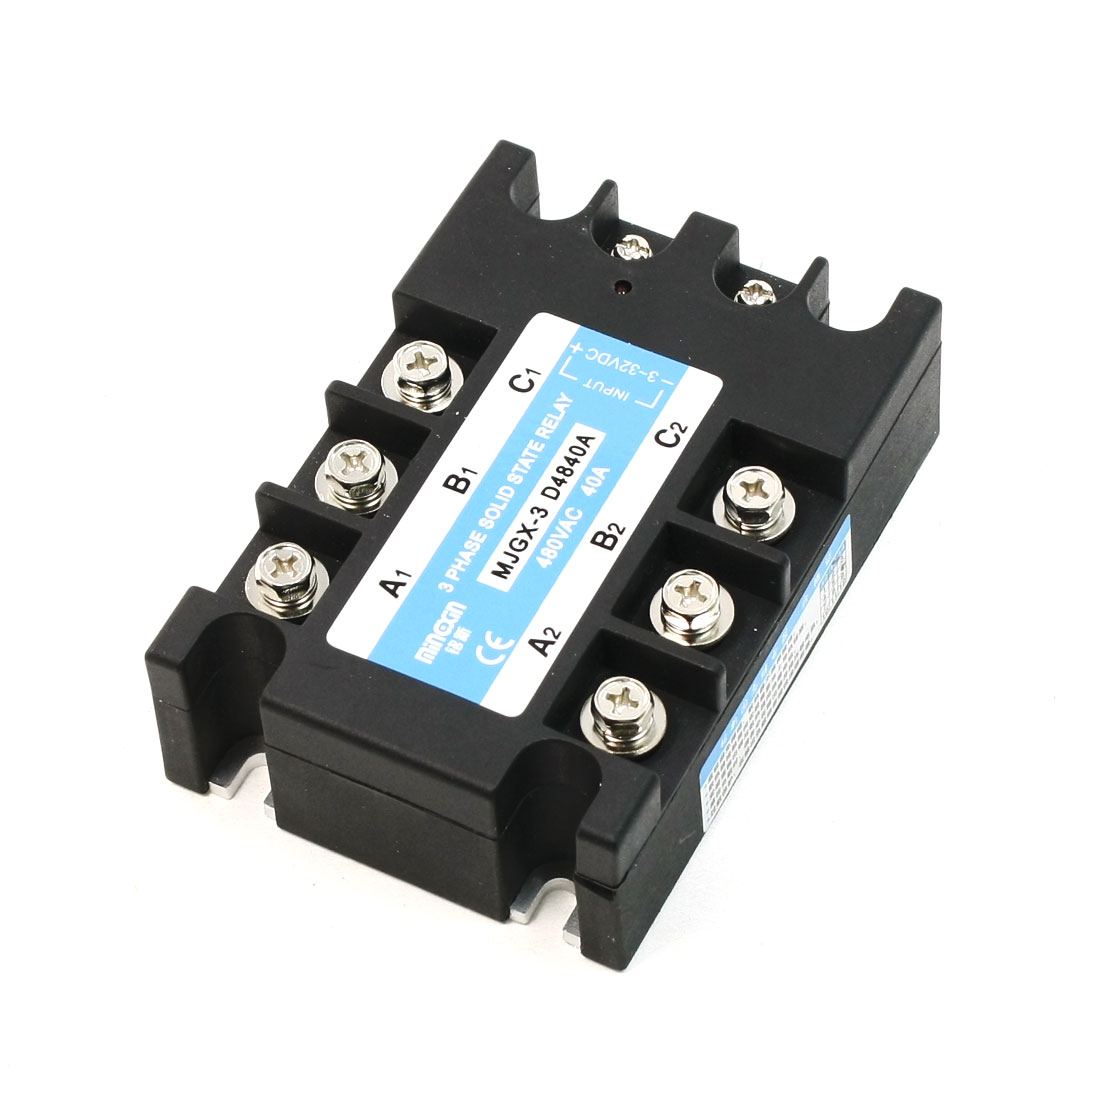 DC to AC Three Phase Solid State Relay MJGX-3 3-32VDC 480VAC 40A